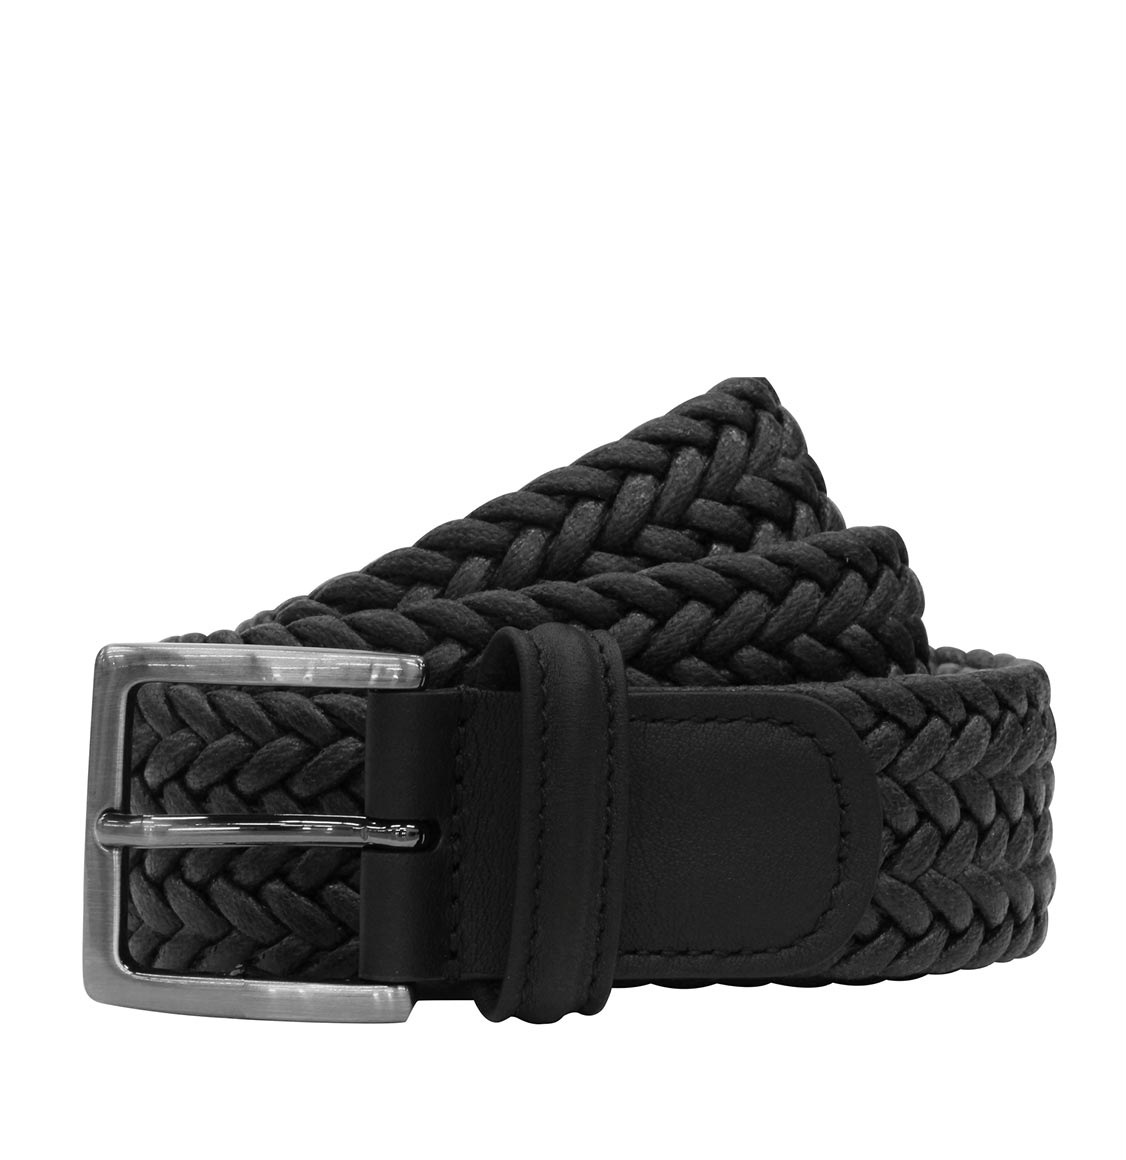 Anderson's Waxed Leather-Trimmed Woven Belt Black